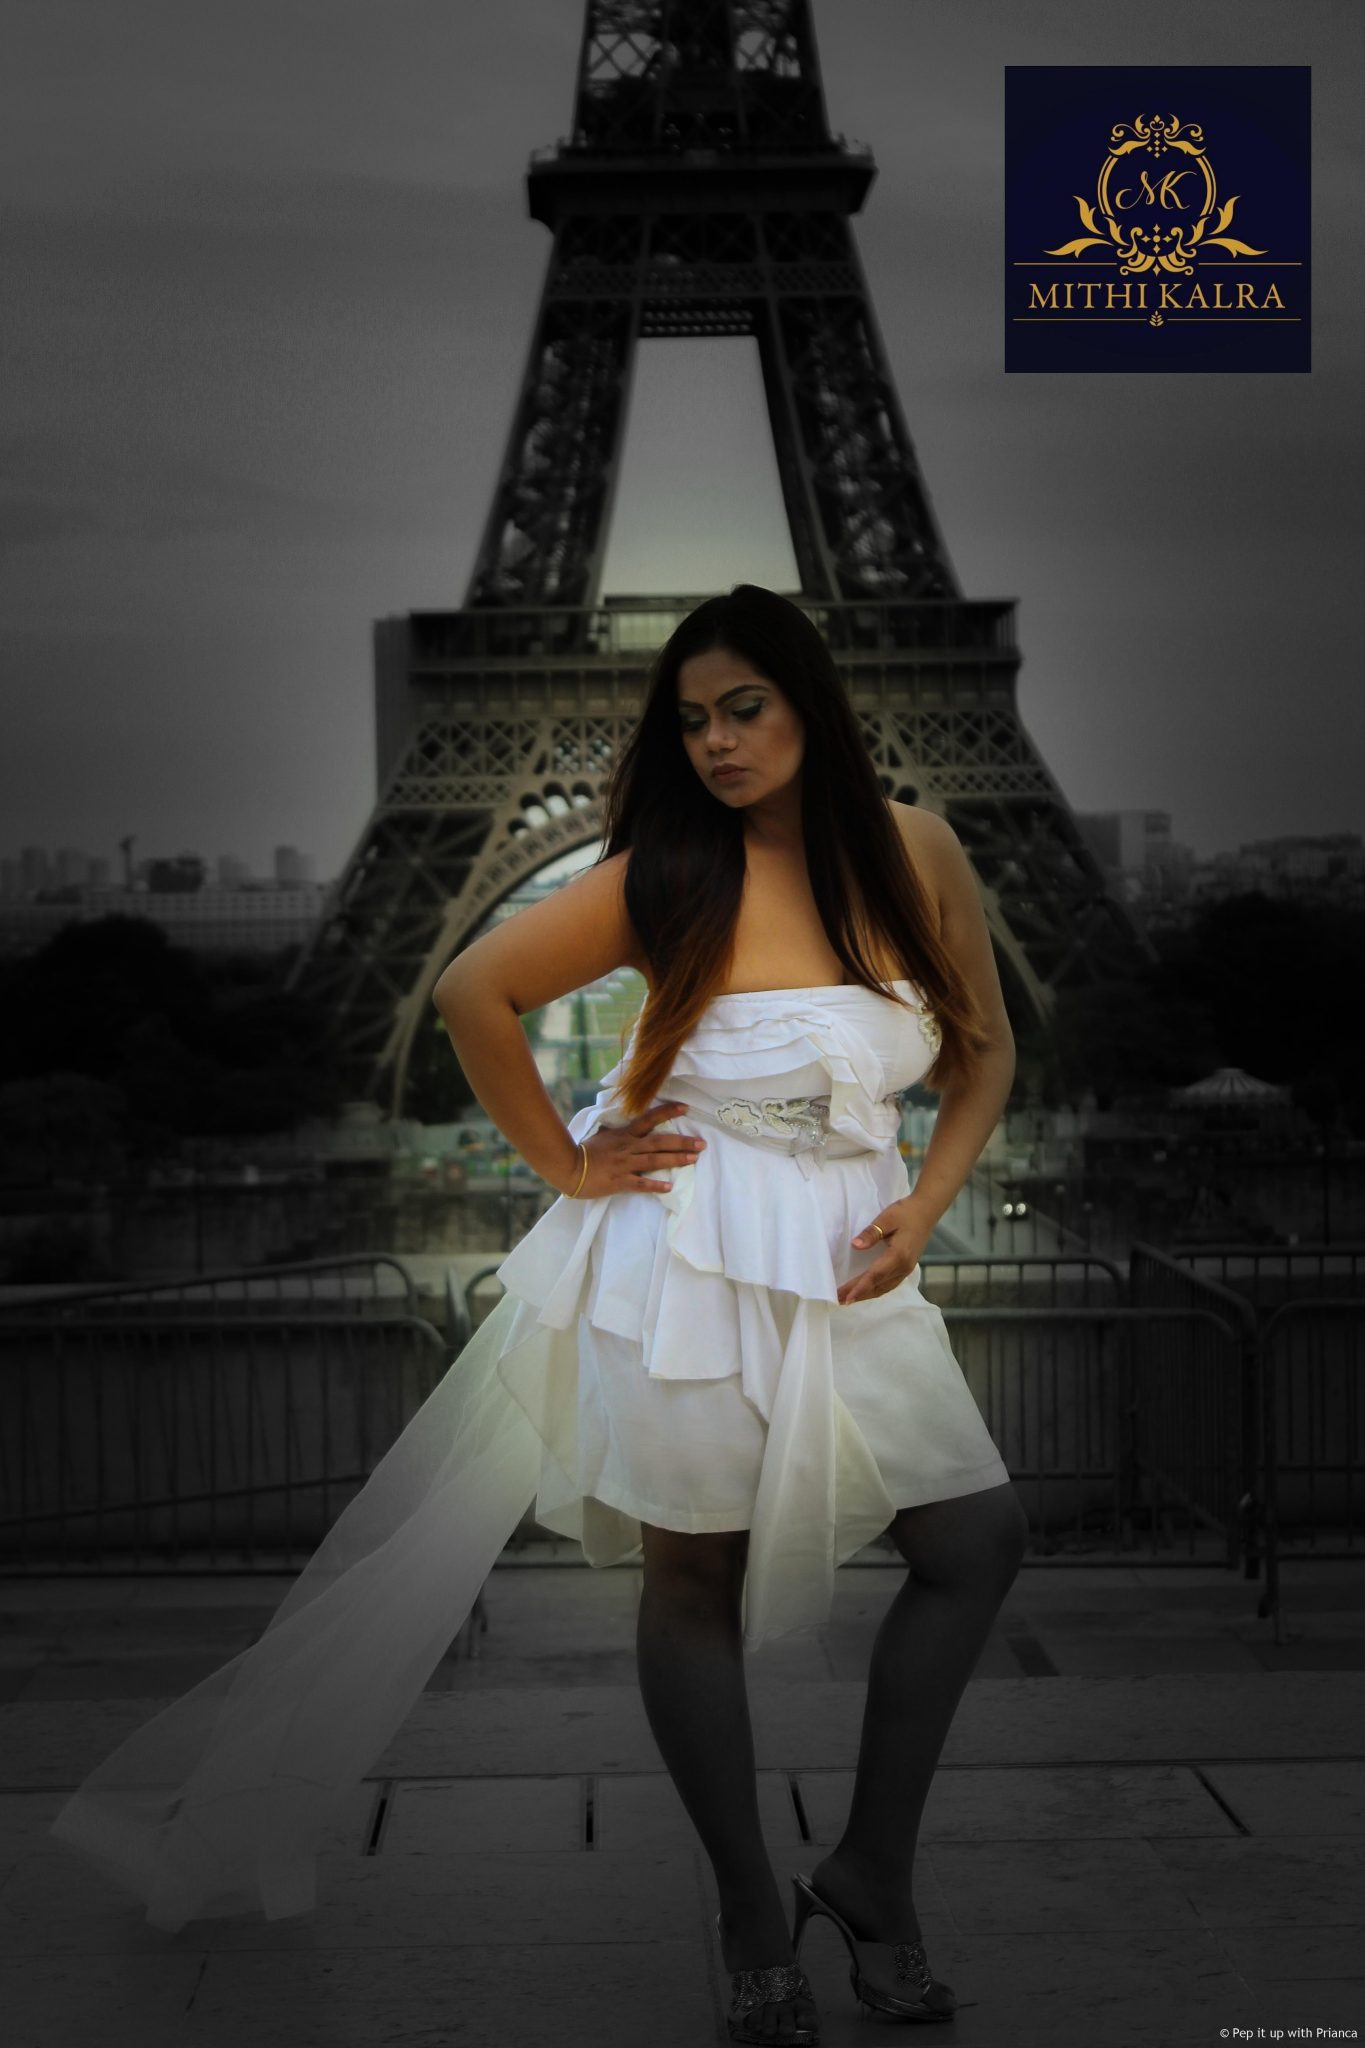 Mithi Kalra S3 - Shooting in Paris for Mithi Kalra Label Ft. Moonlight Collection from India Runway Week